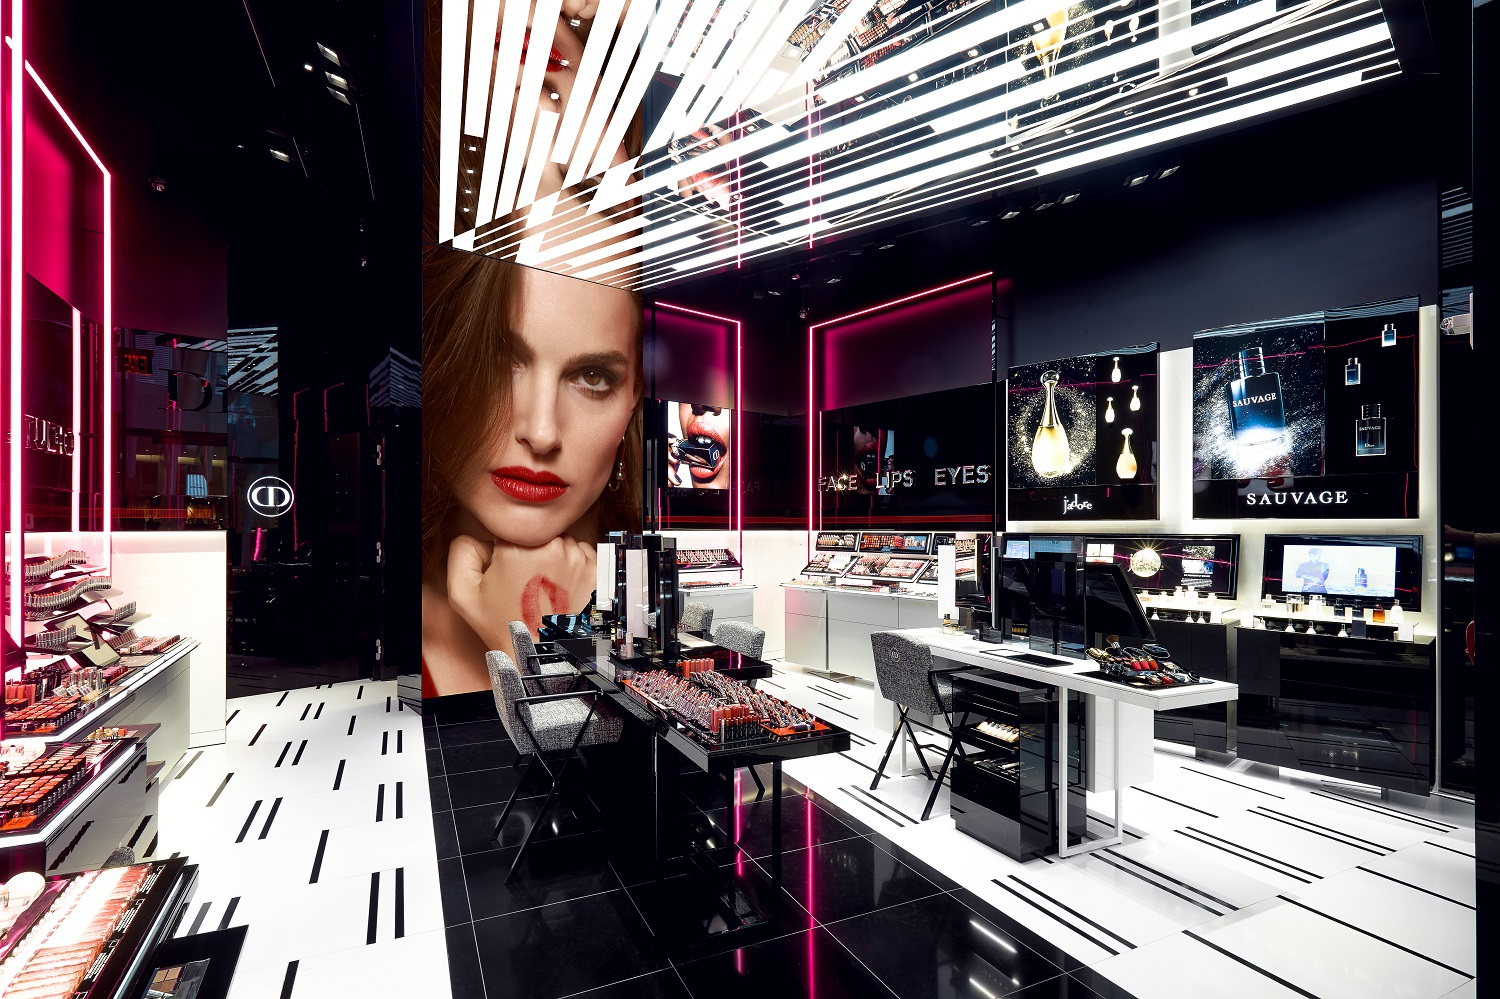 Fashion Beauty News: Dior Opens 1st Makeup Concept Beauty Boutique In NYC